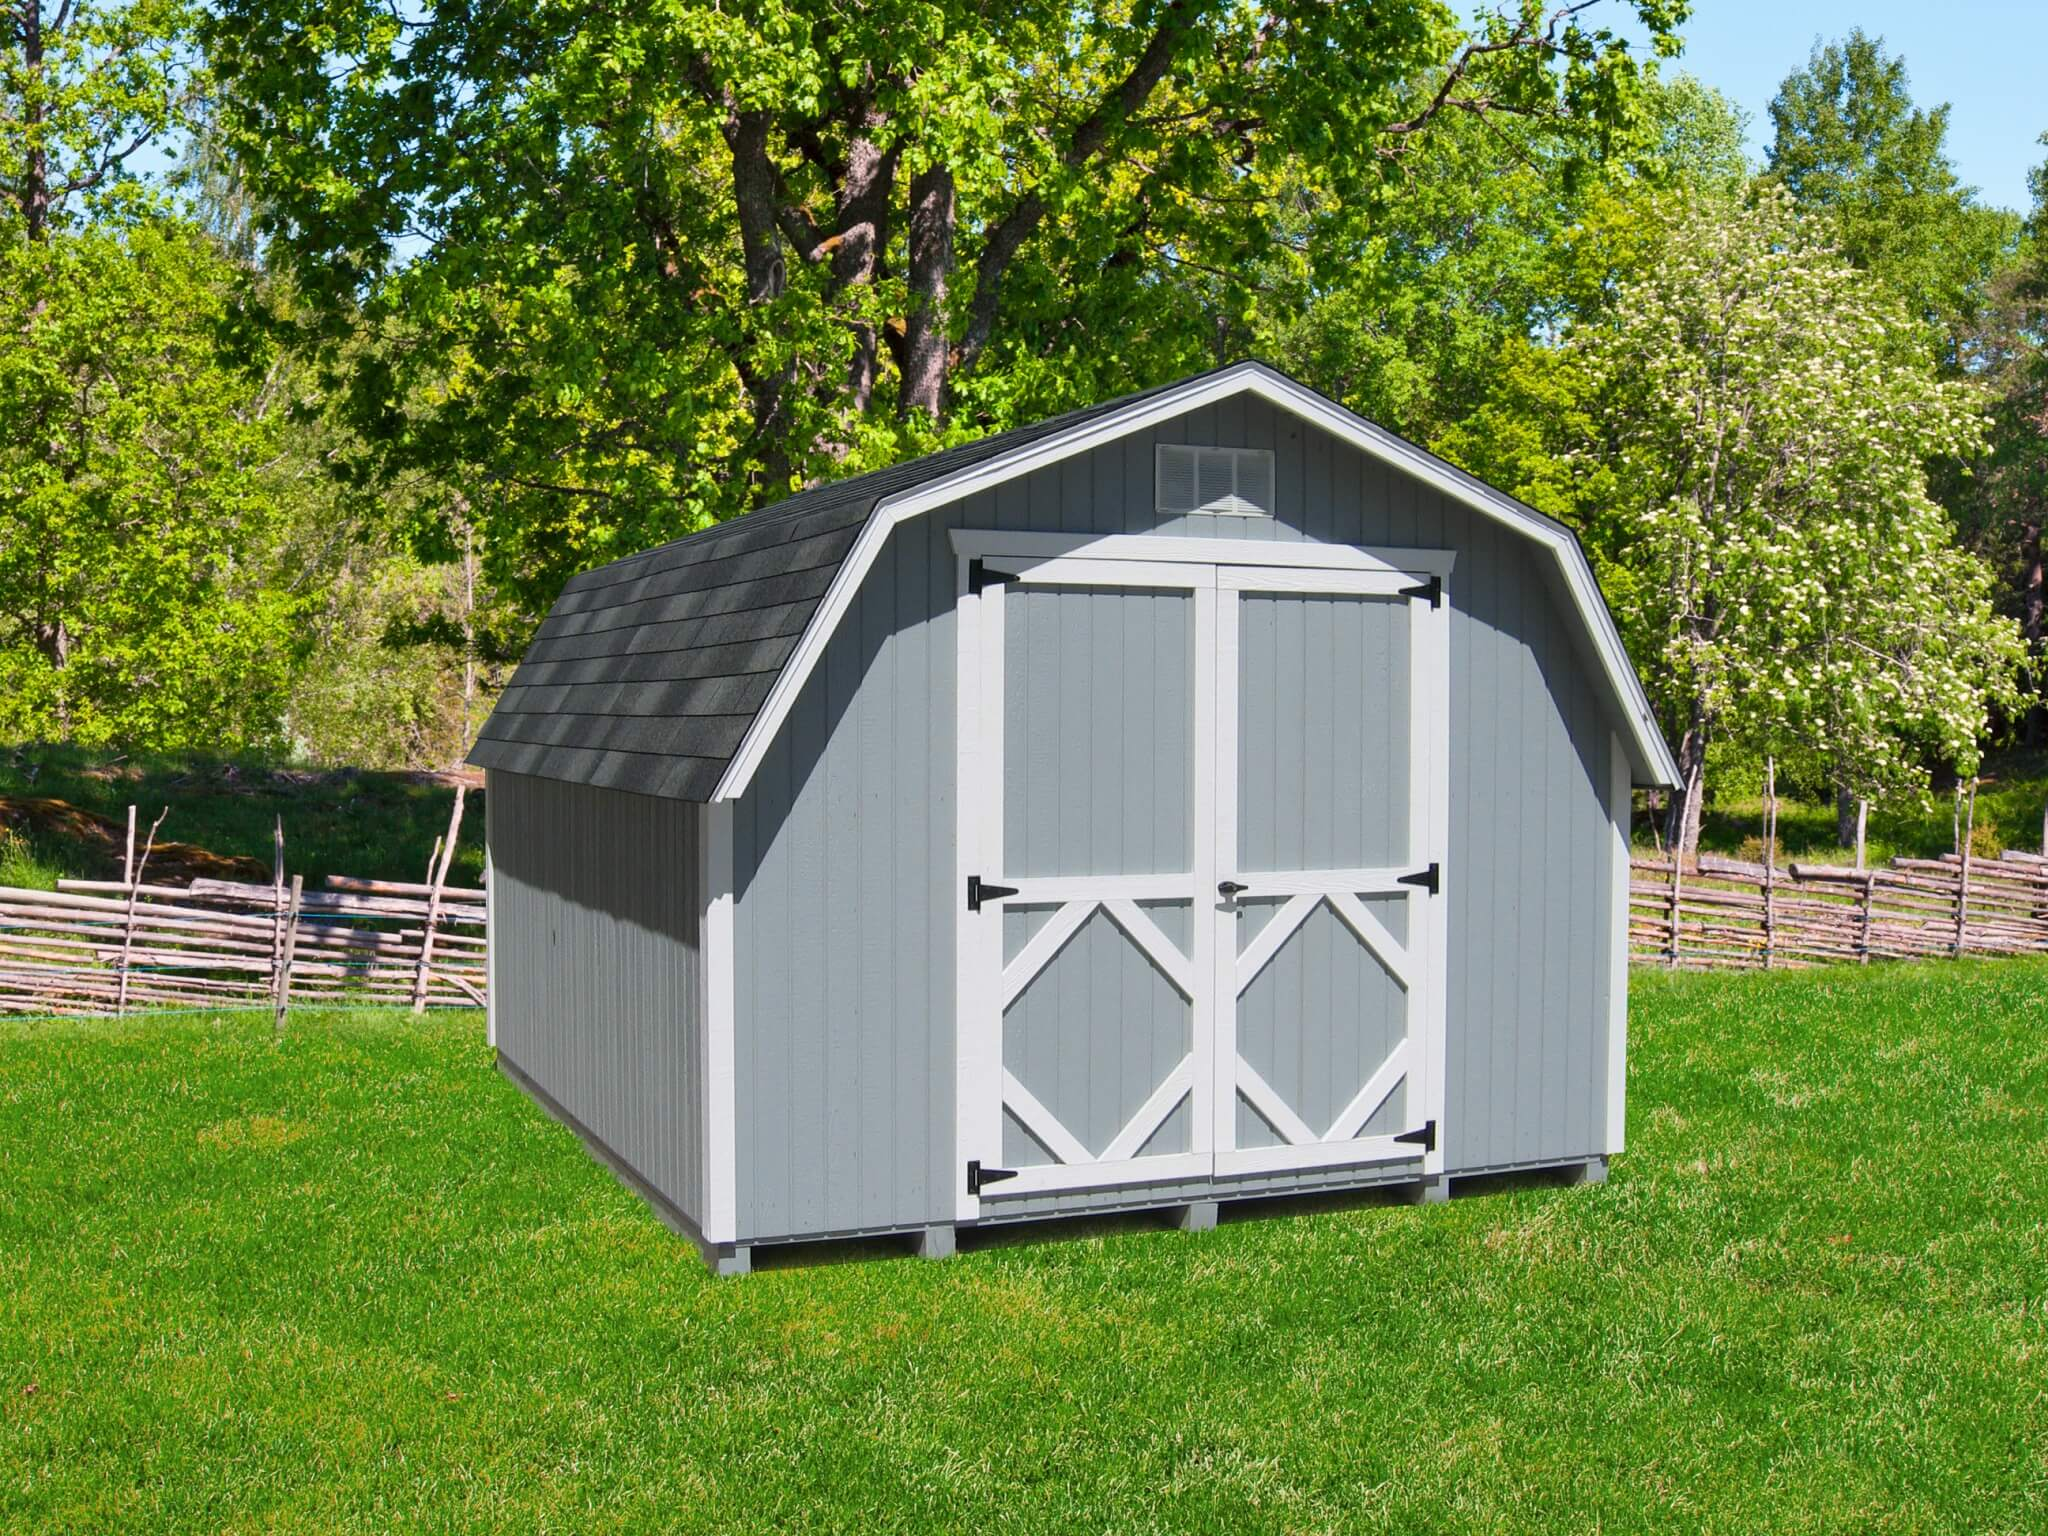 Classic Gambrel Barn storage shed kit